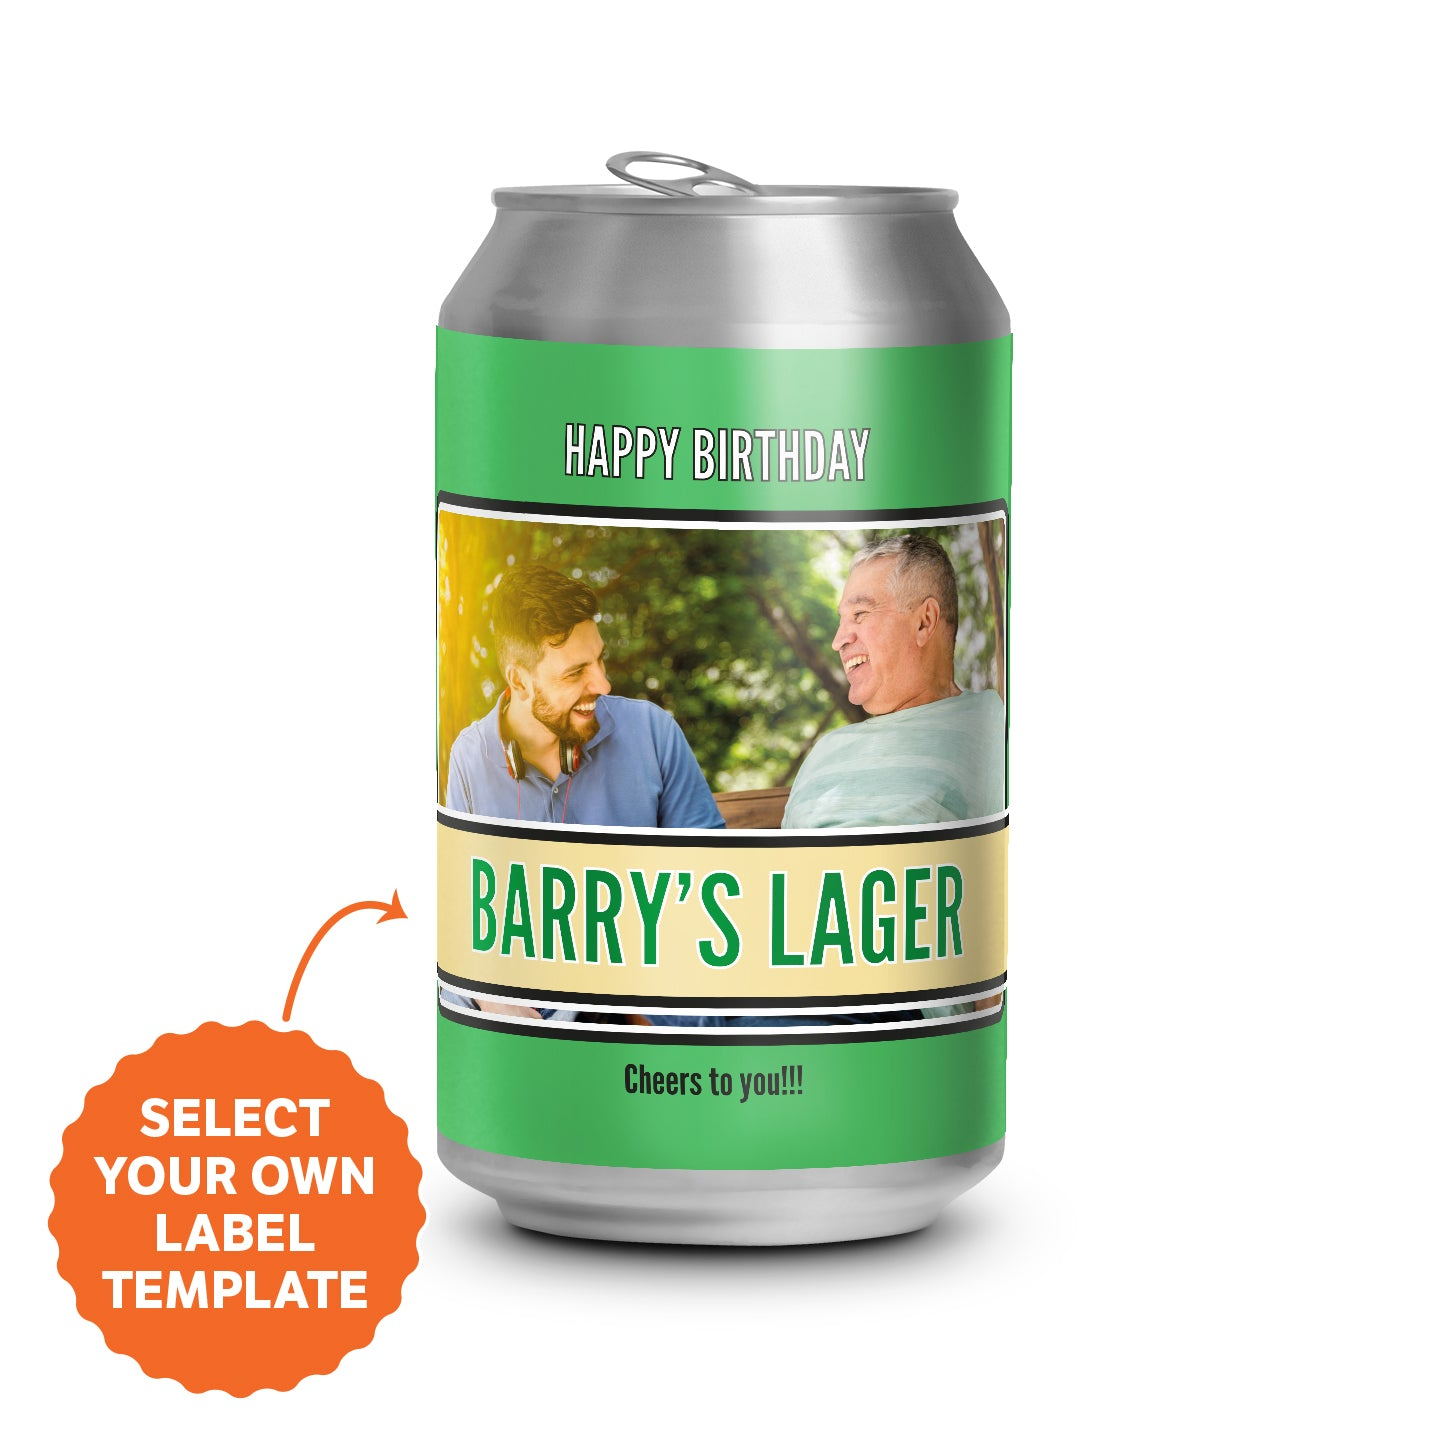 Lager Cans 4.3% - 375ml - Carton of 24